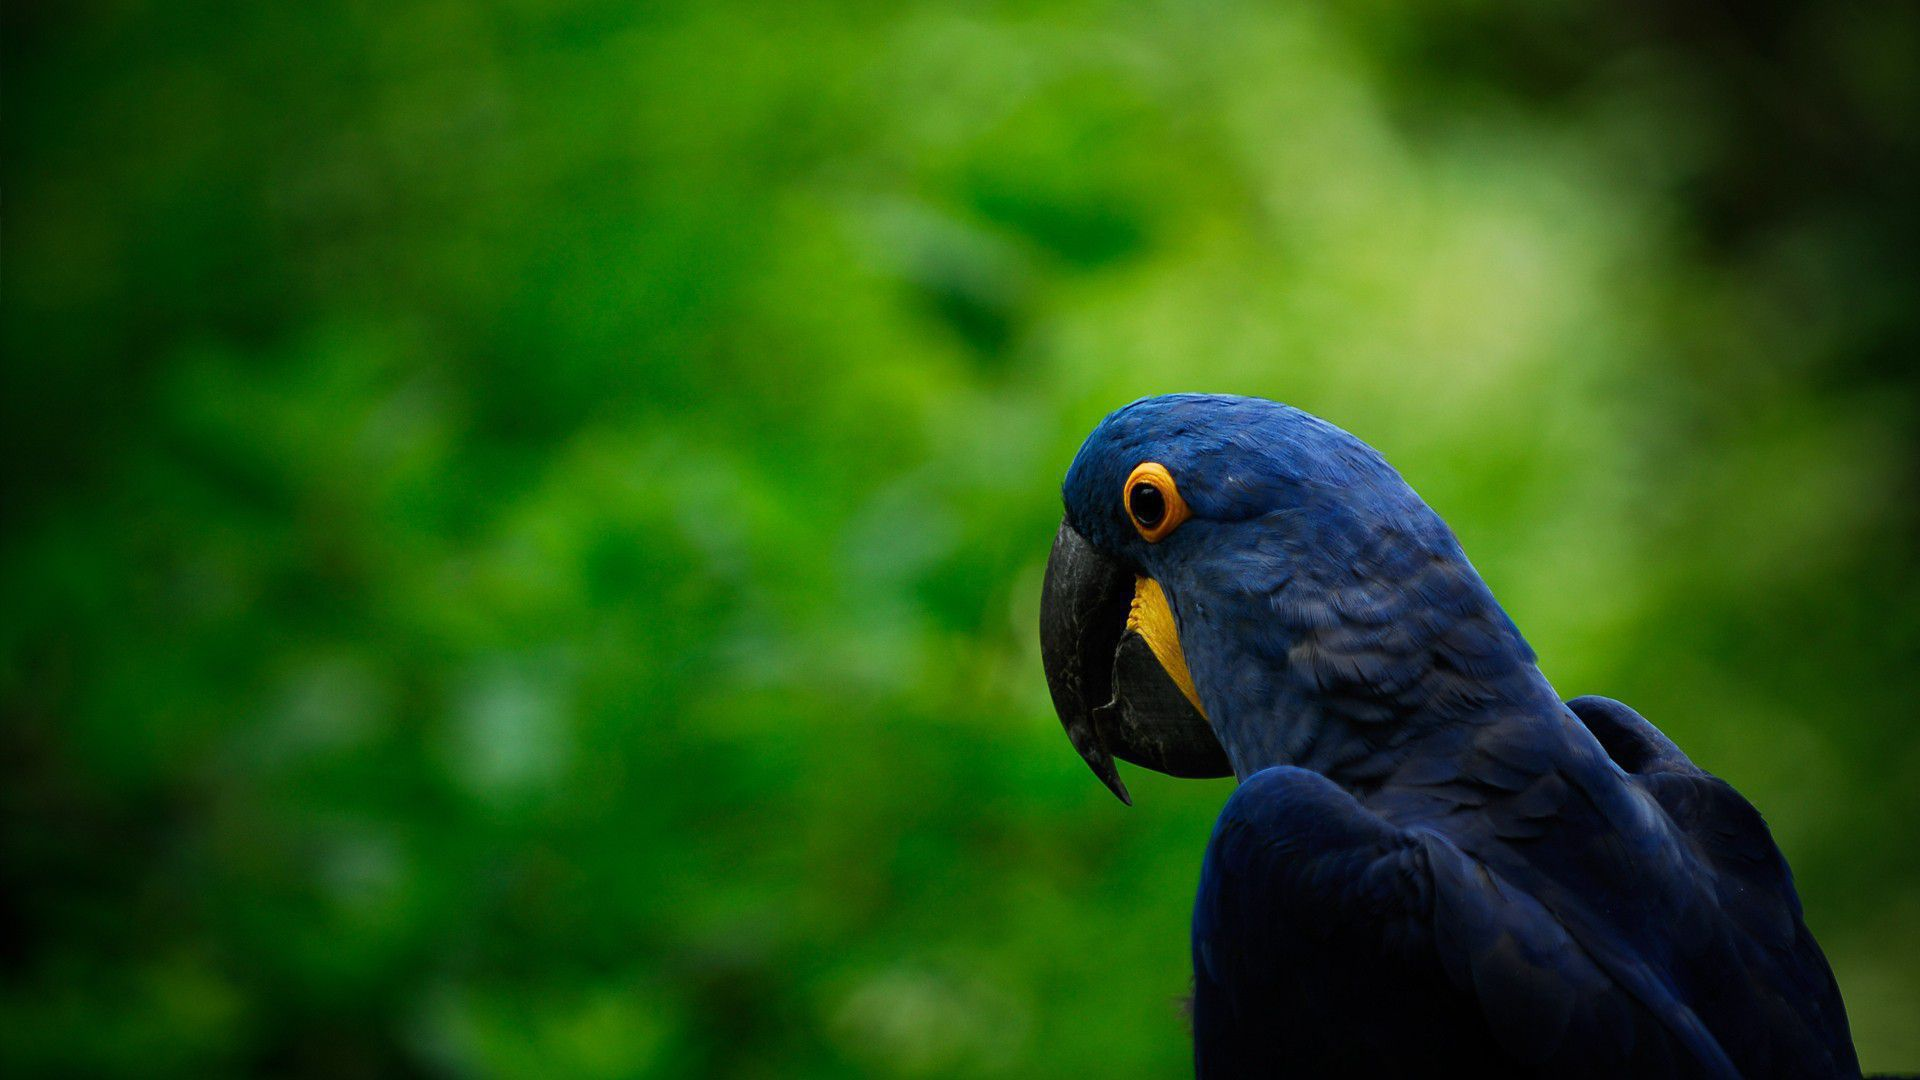 Blue Parrot High Definition Wallpapers